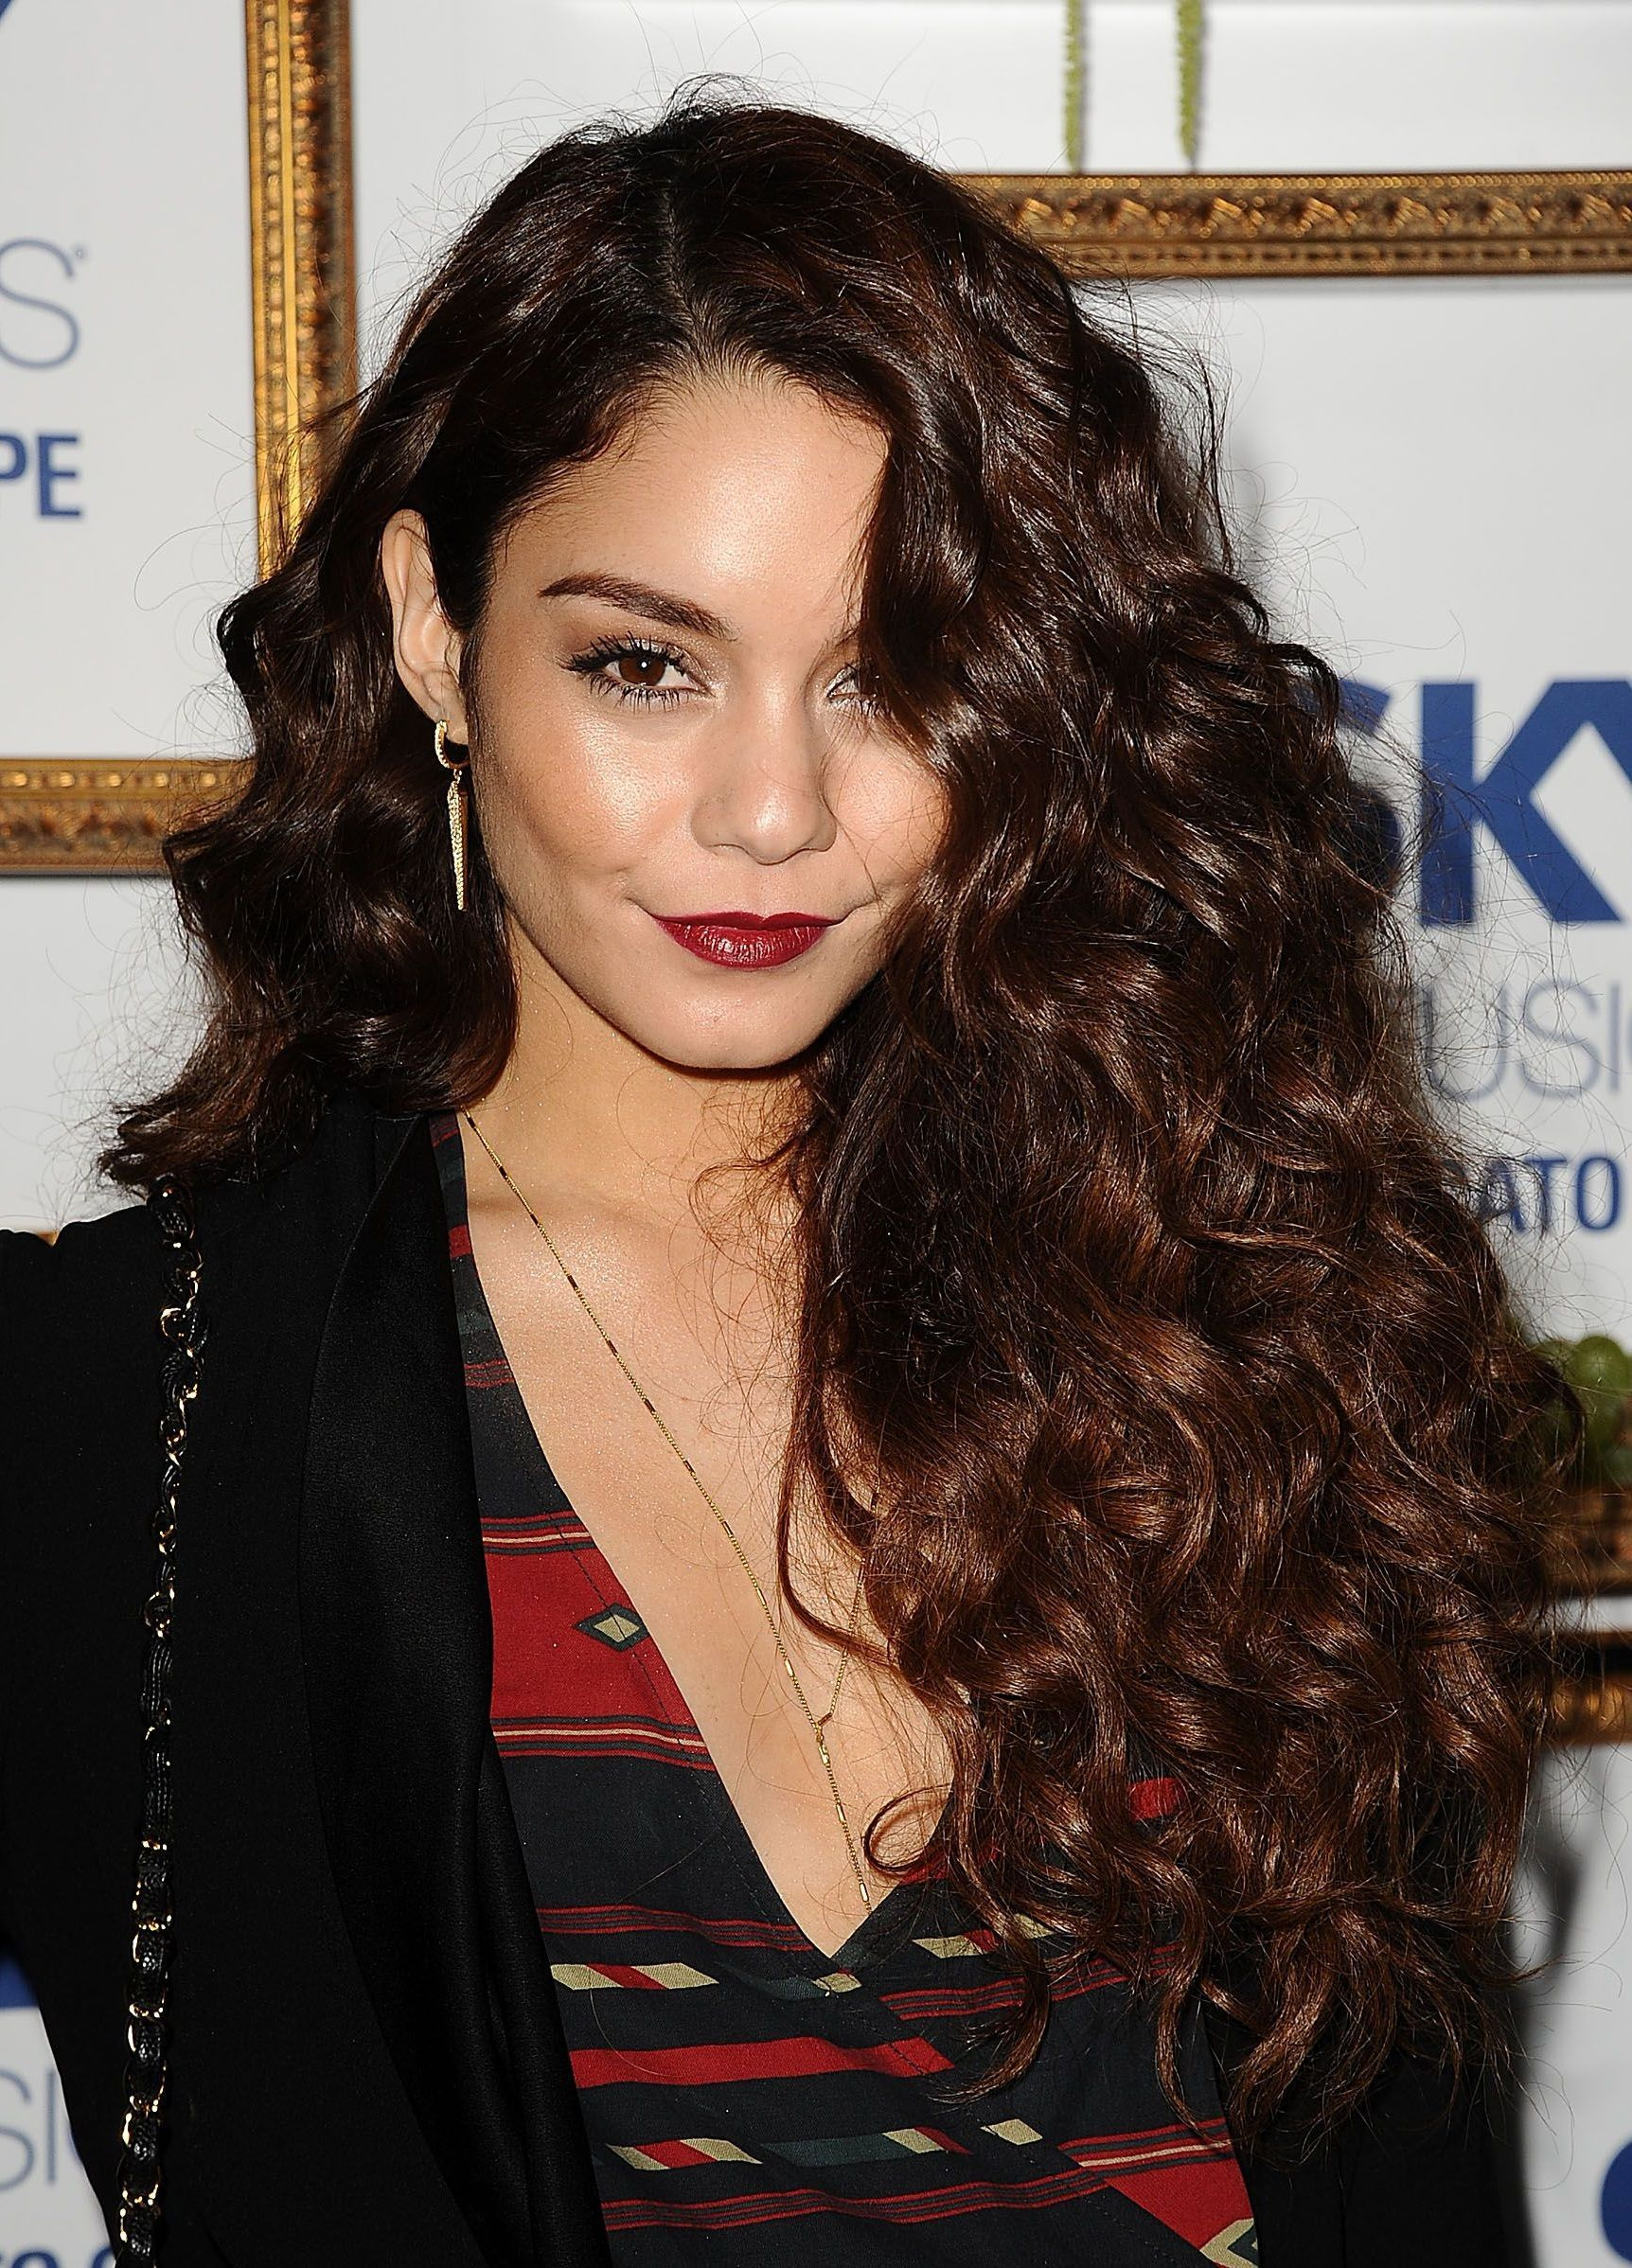 Hairstyles for Long Curly Hair  Curly Hair  Pinterest  Curly hair